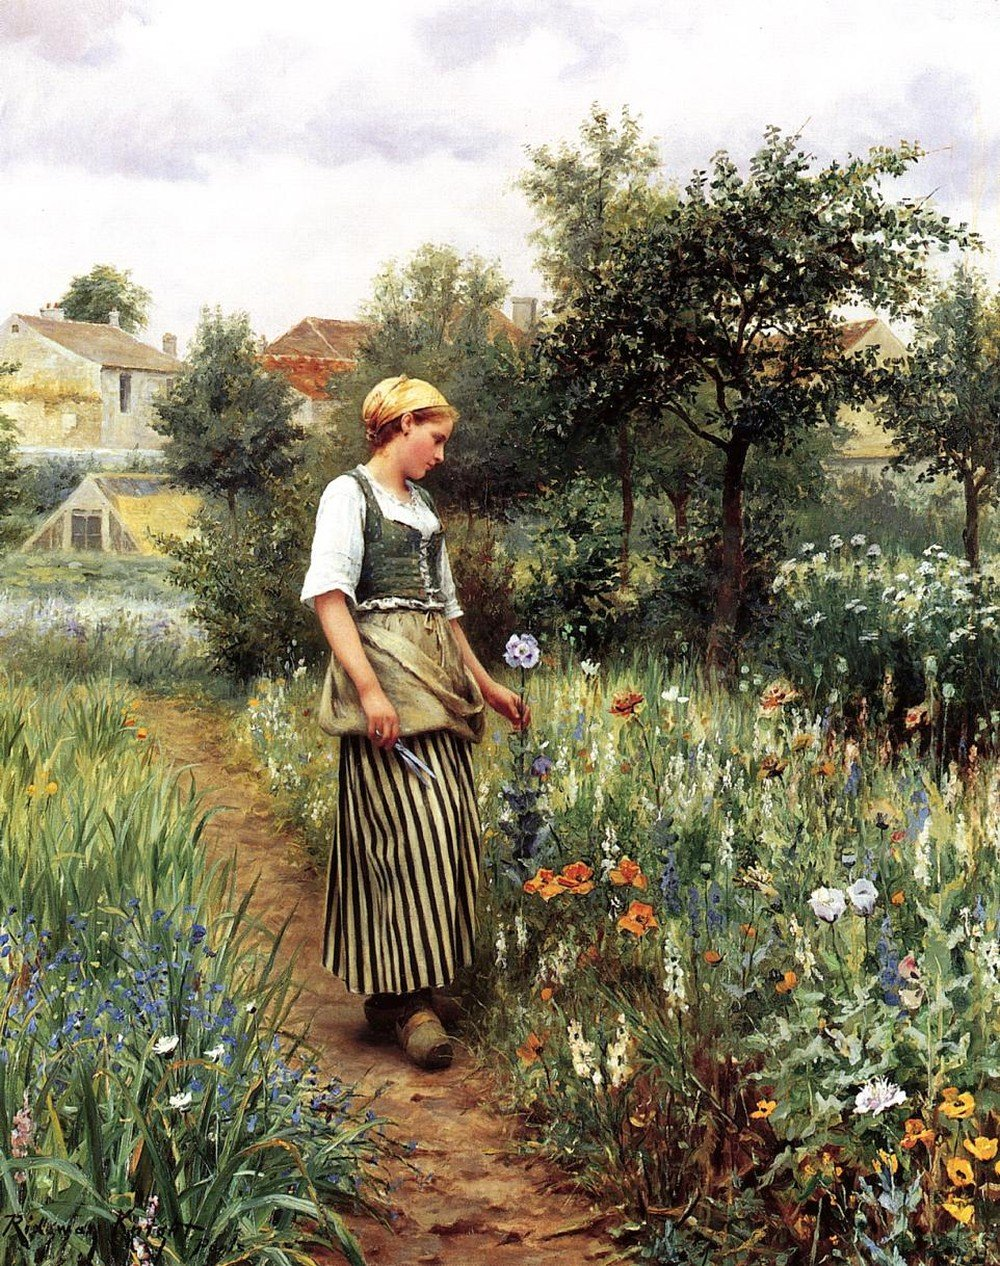 Daniel_Ridgway_Knight_Painting_In the garden